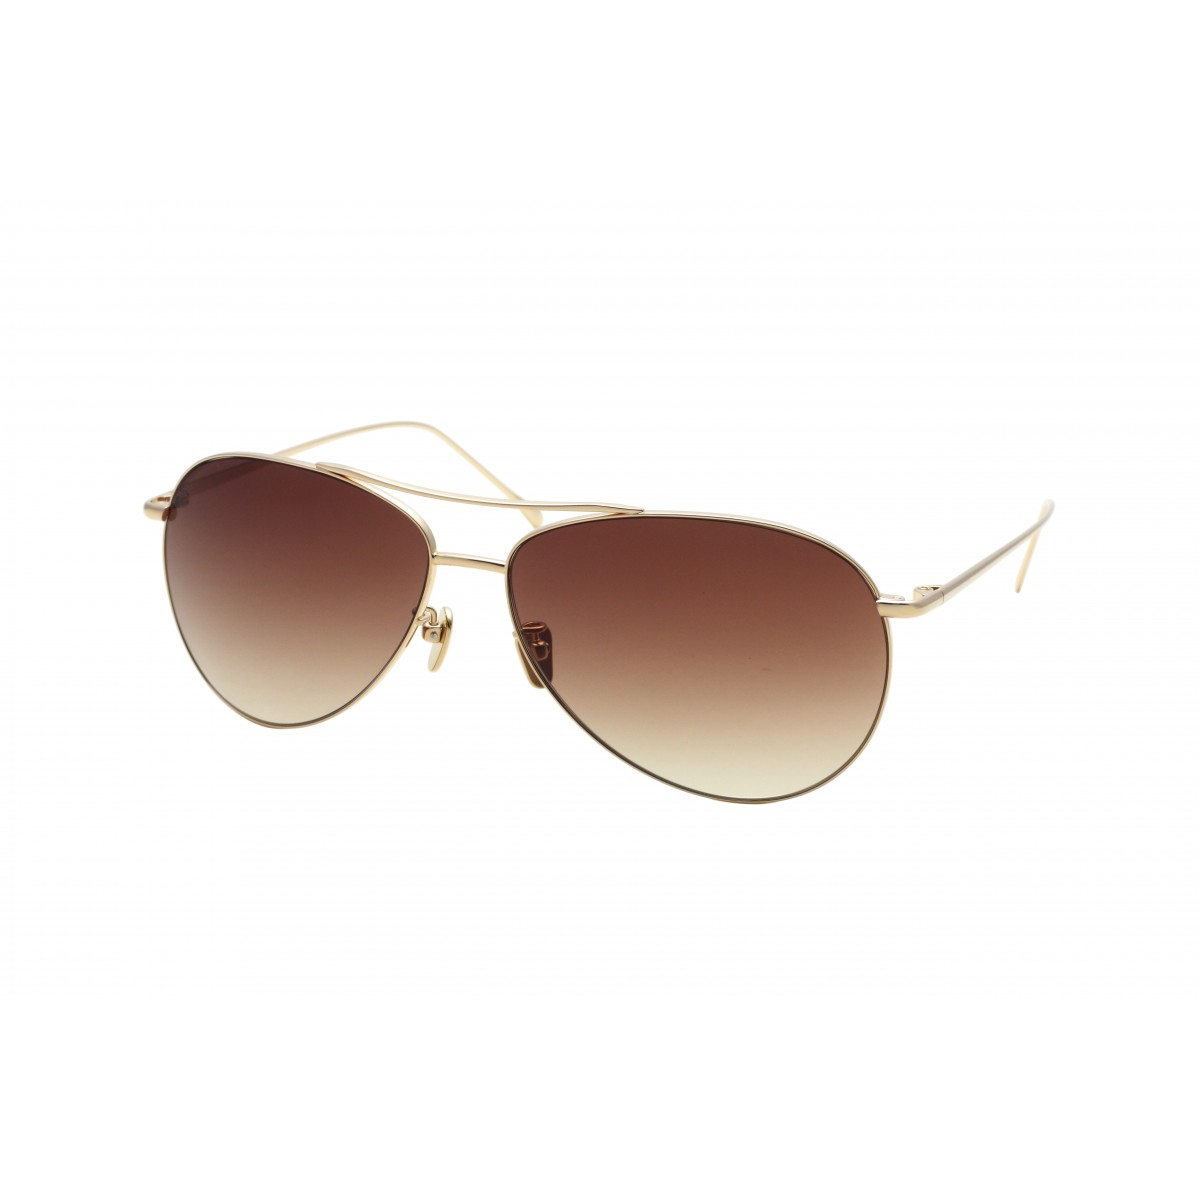 Frency & Mercury aviator sunglasses Cheap Top Quality Best Seller Cheap Online Particular jI5JKUg5Dh